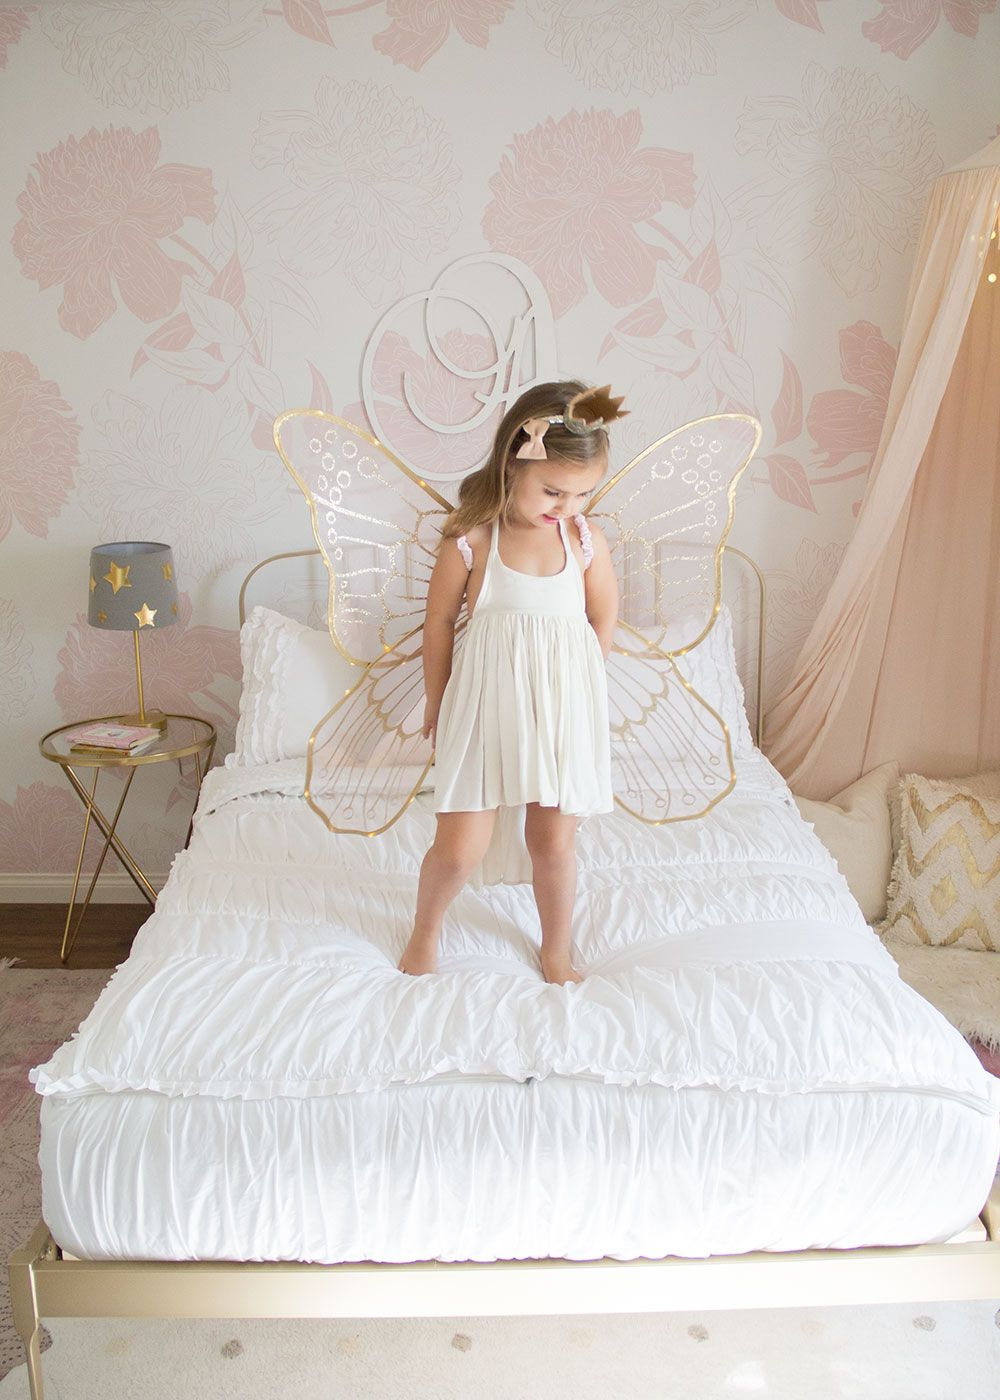 Our Big Girl S Room Reveal Beddys Bedding Bed For Girls Room